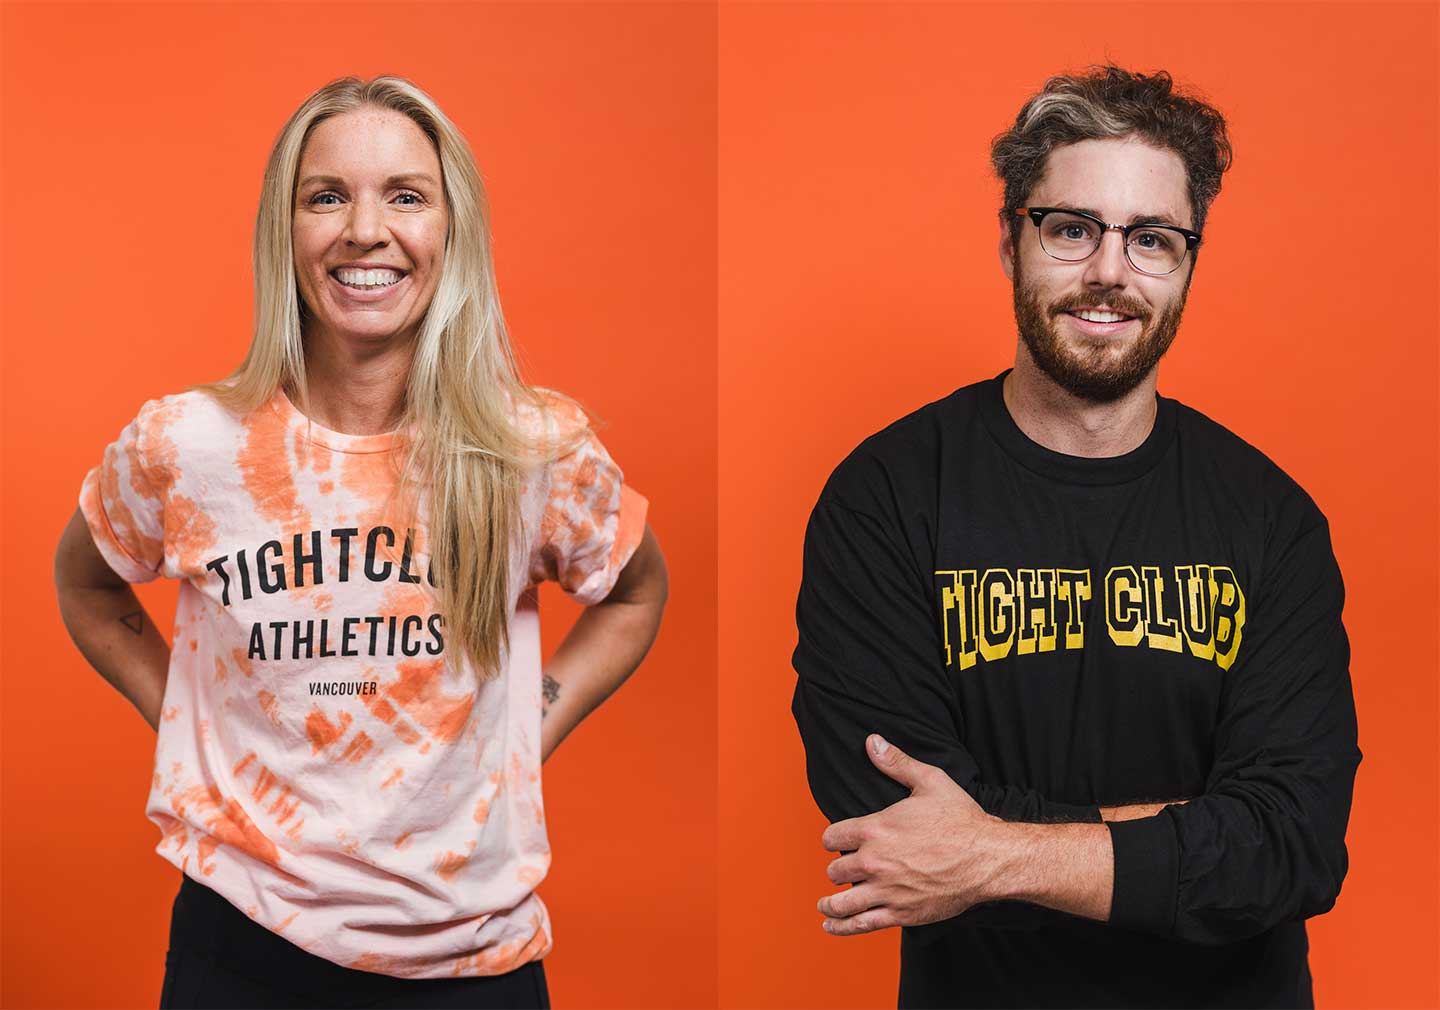 Tight Club Athletics - Staff - NAT TAYLOR & CODY WILSON